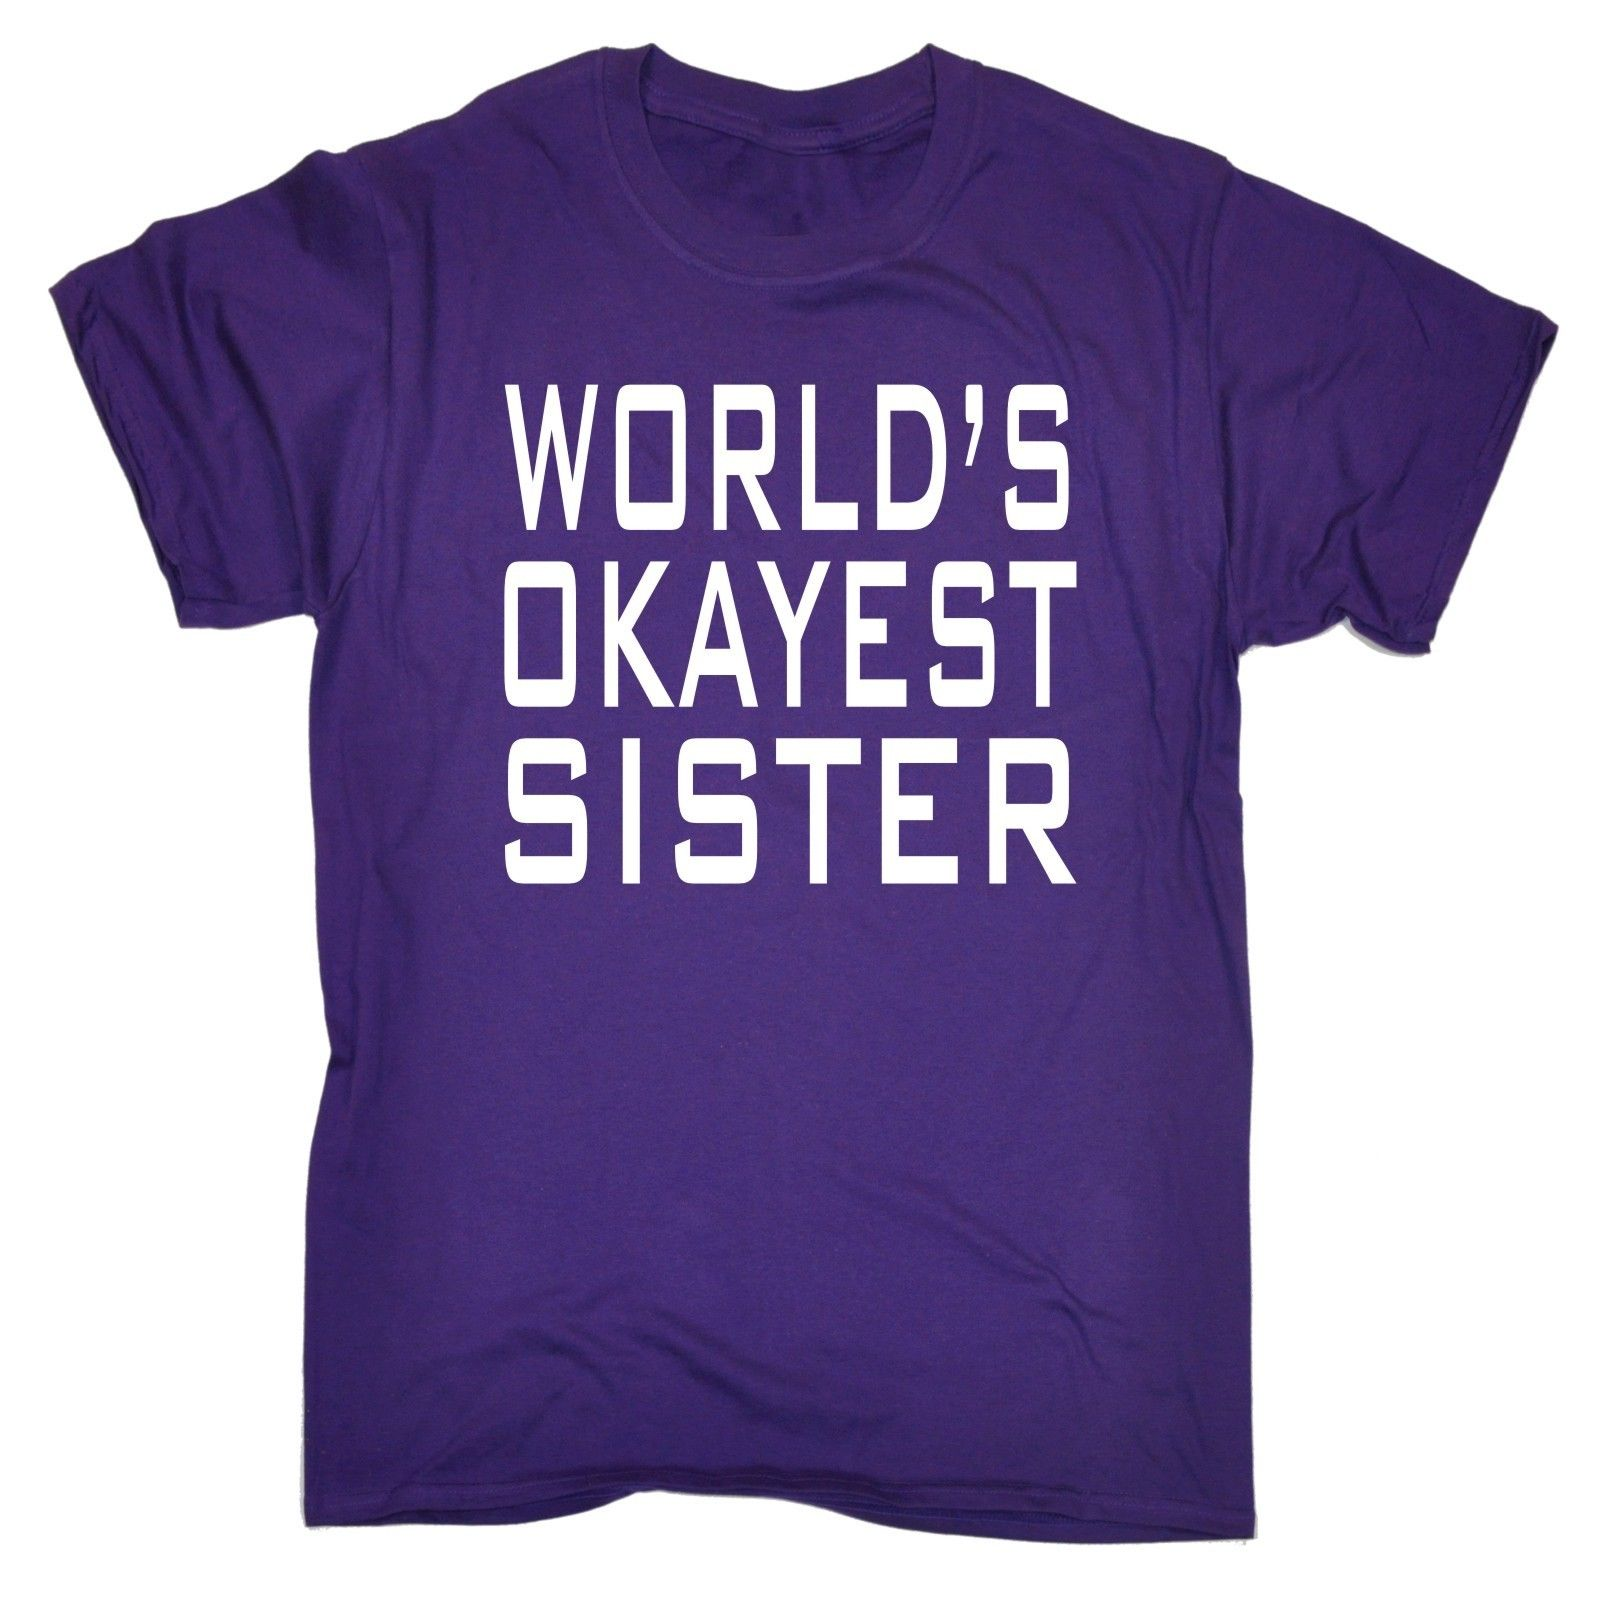 Worlds Okayest Sister T-SHIRT Tee Ok Sis Funny Birthday Gift Present for Him Sale 100 % Cotton T Shirt Comical Shirt MenS